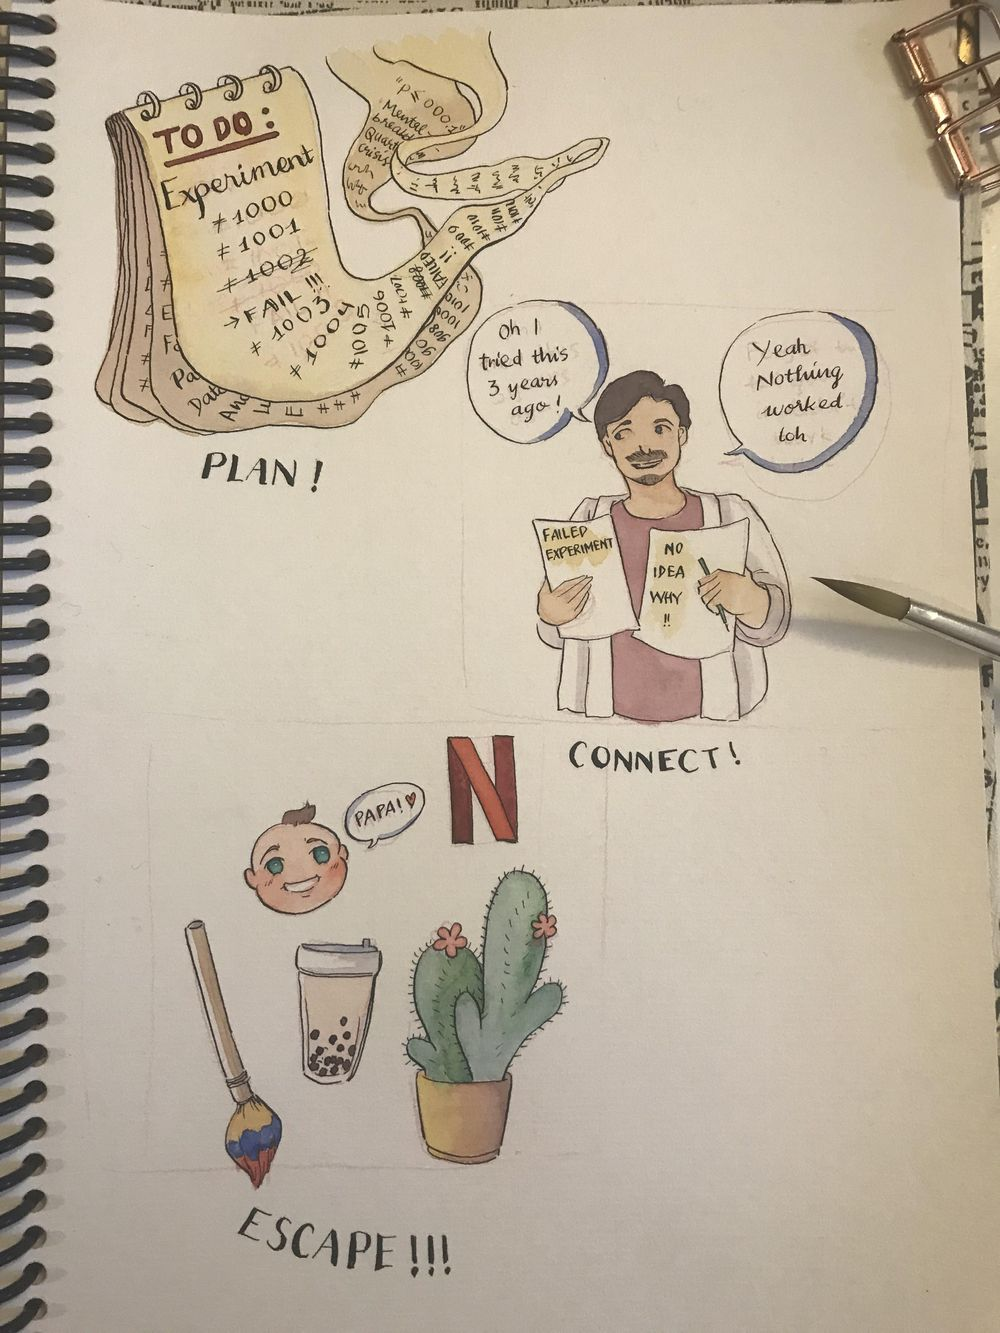 My Lab Work Essentials - image 7 - student project